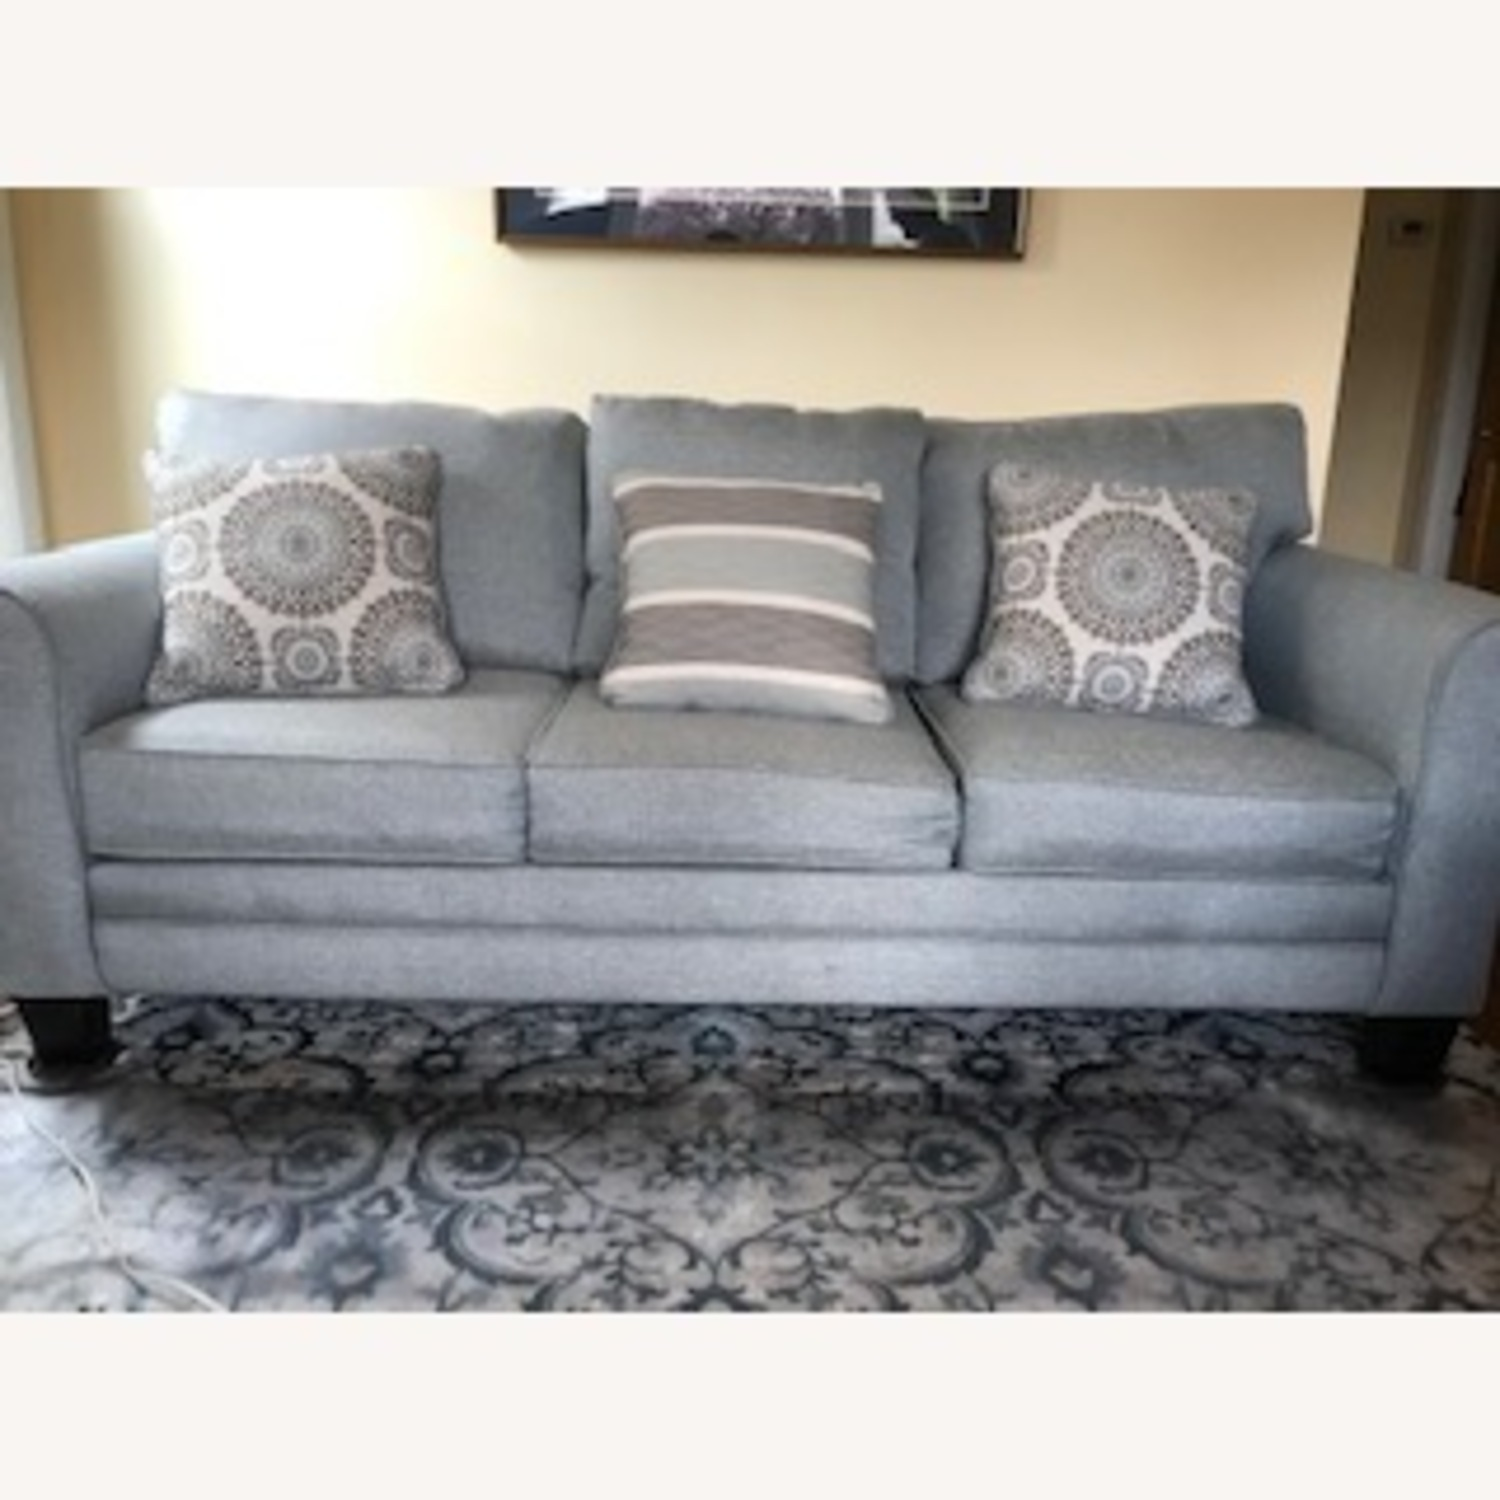 Wayfair Sedgley Rolled Armed Sofa with Reversible Cushion - image-1